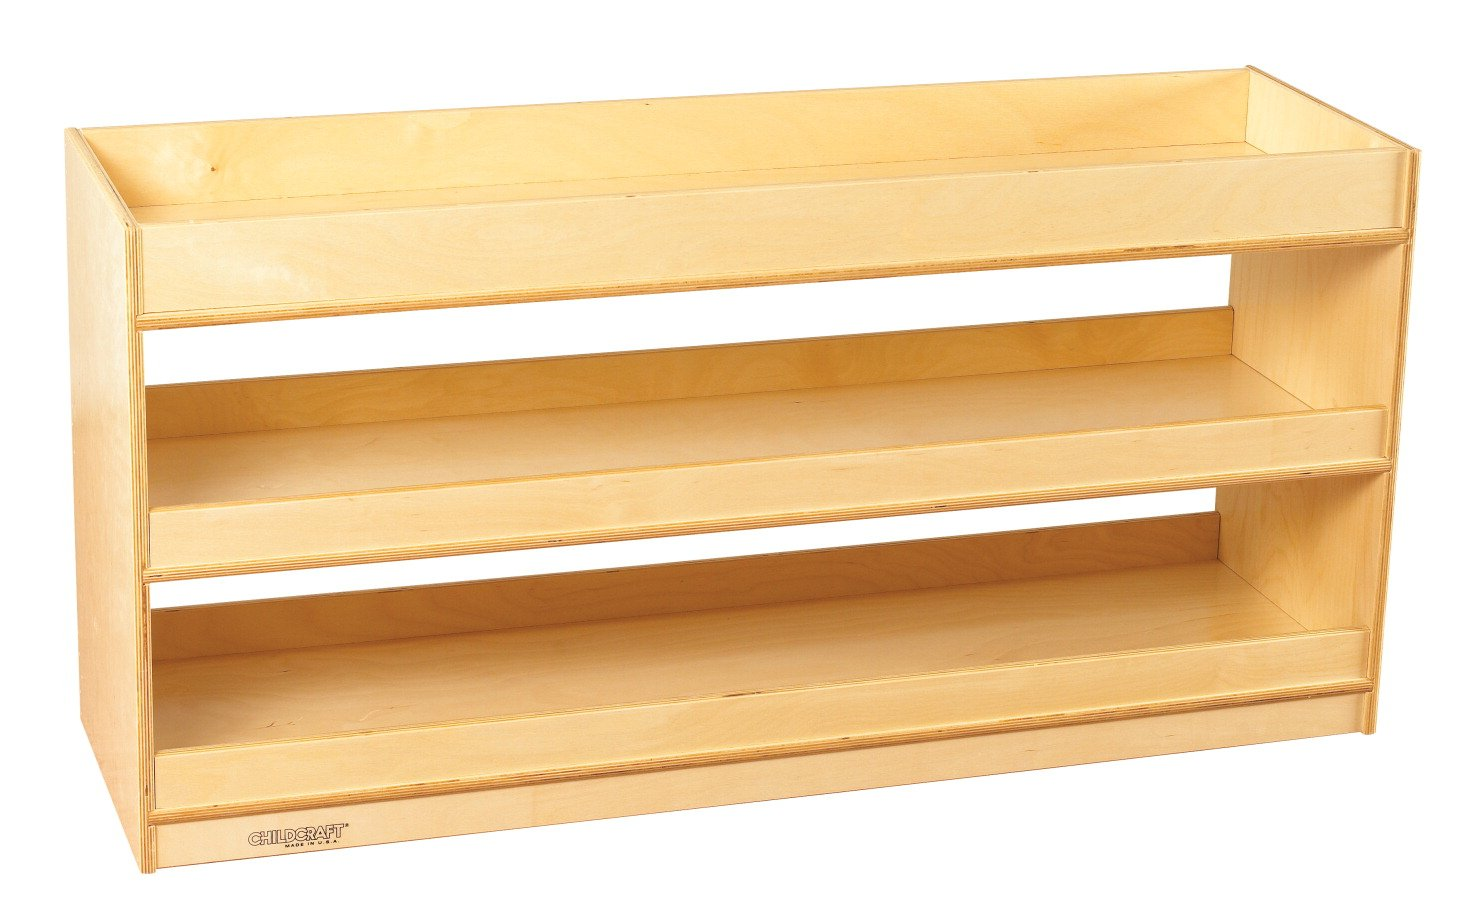 Childcraft 1464162 Mobile Open Storage Shelf with Well Top, Wood, 47-3/4'' x 14-1/4'' x 24'', Natural Wood Tone